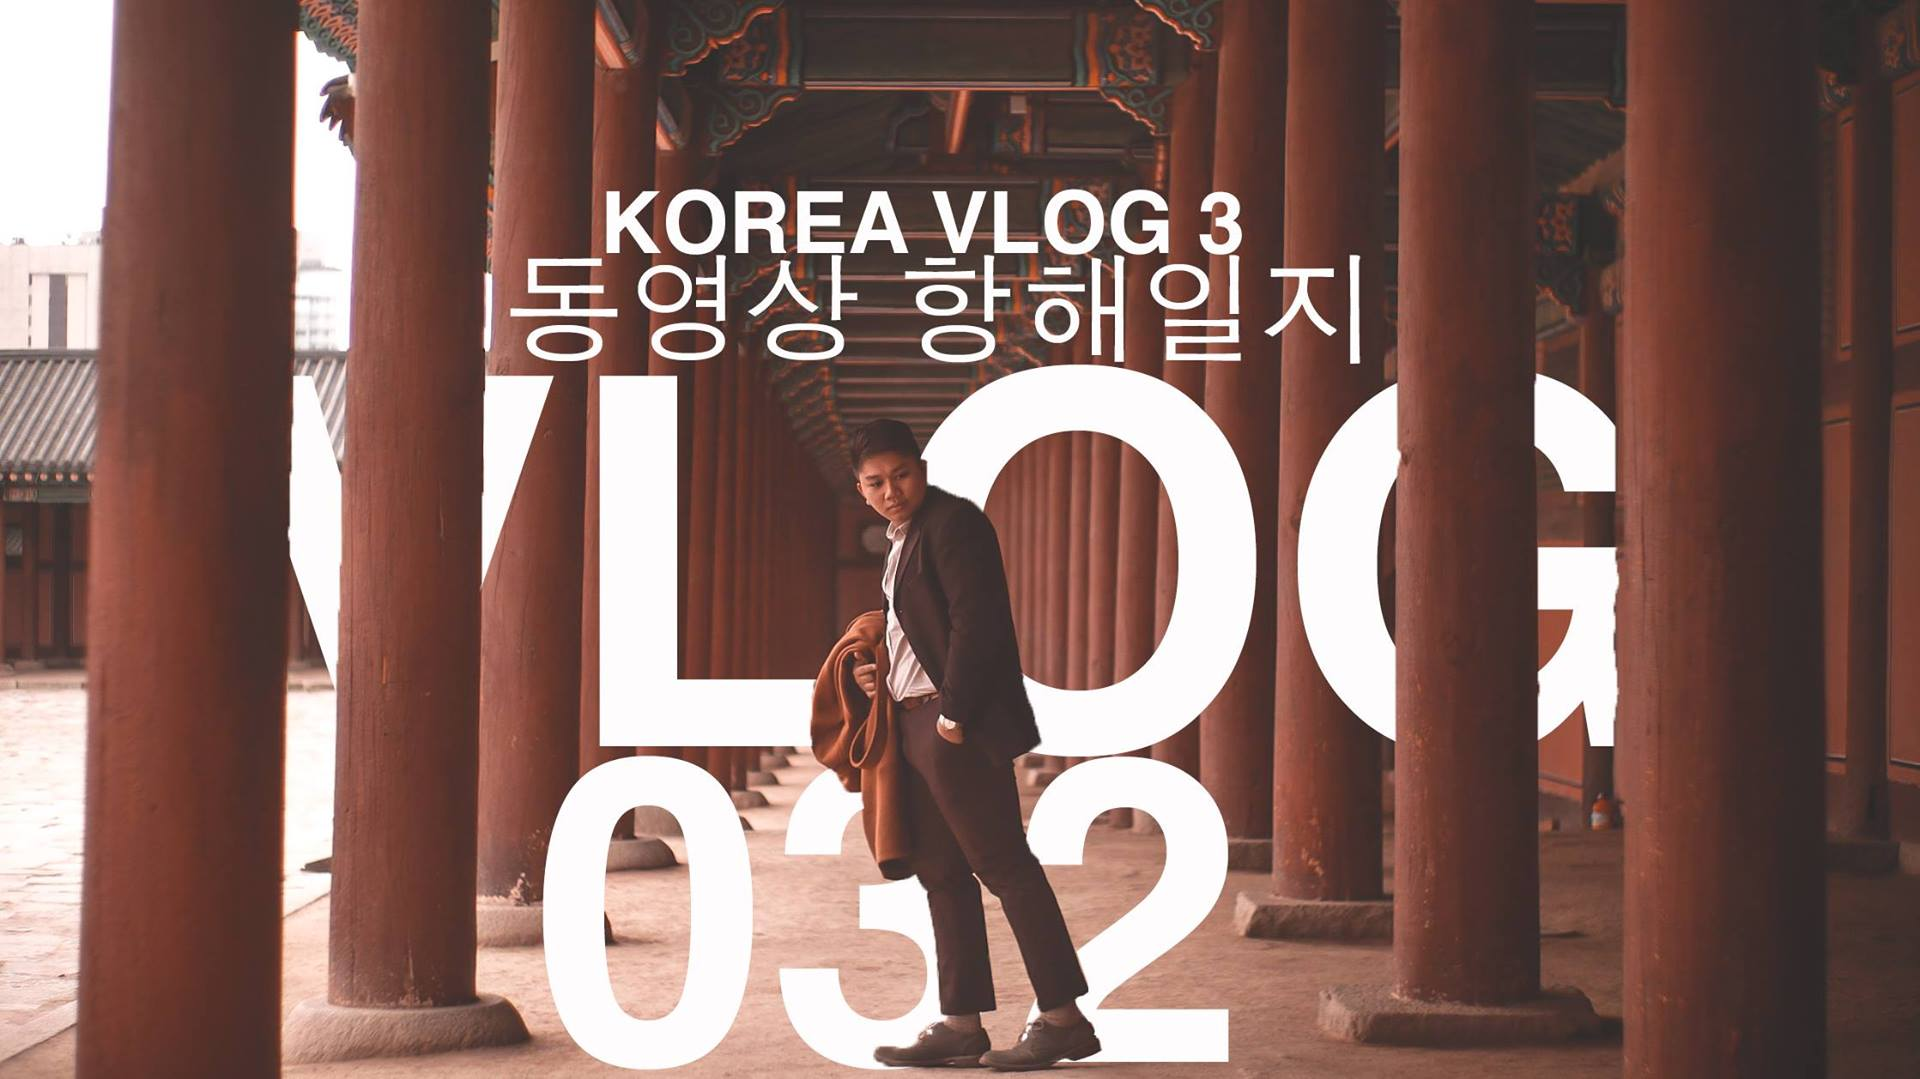 VLOG032: CHRISTMAS IN KOREA (DAY 3) | KOREA VLOG SERIES